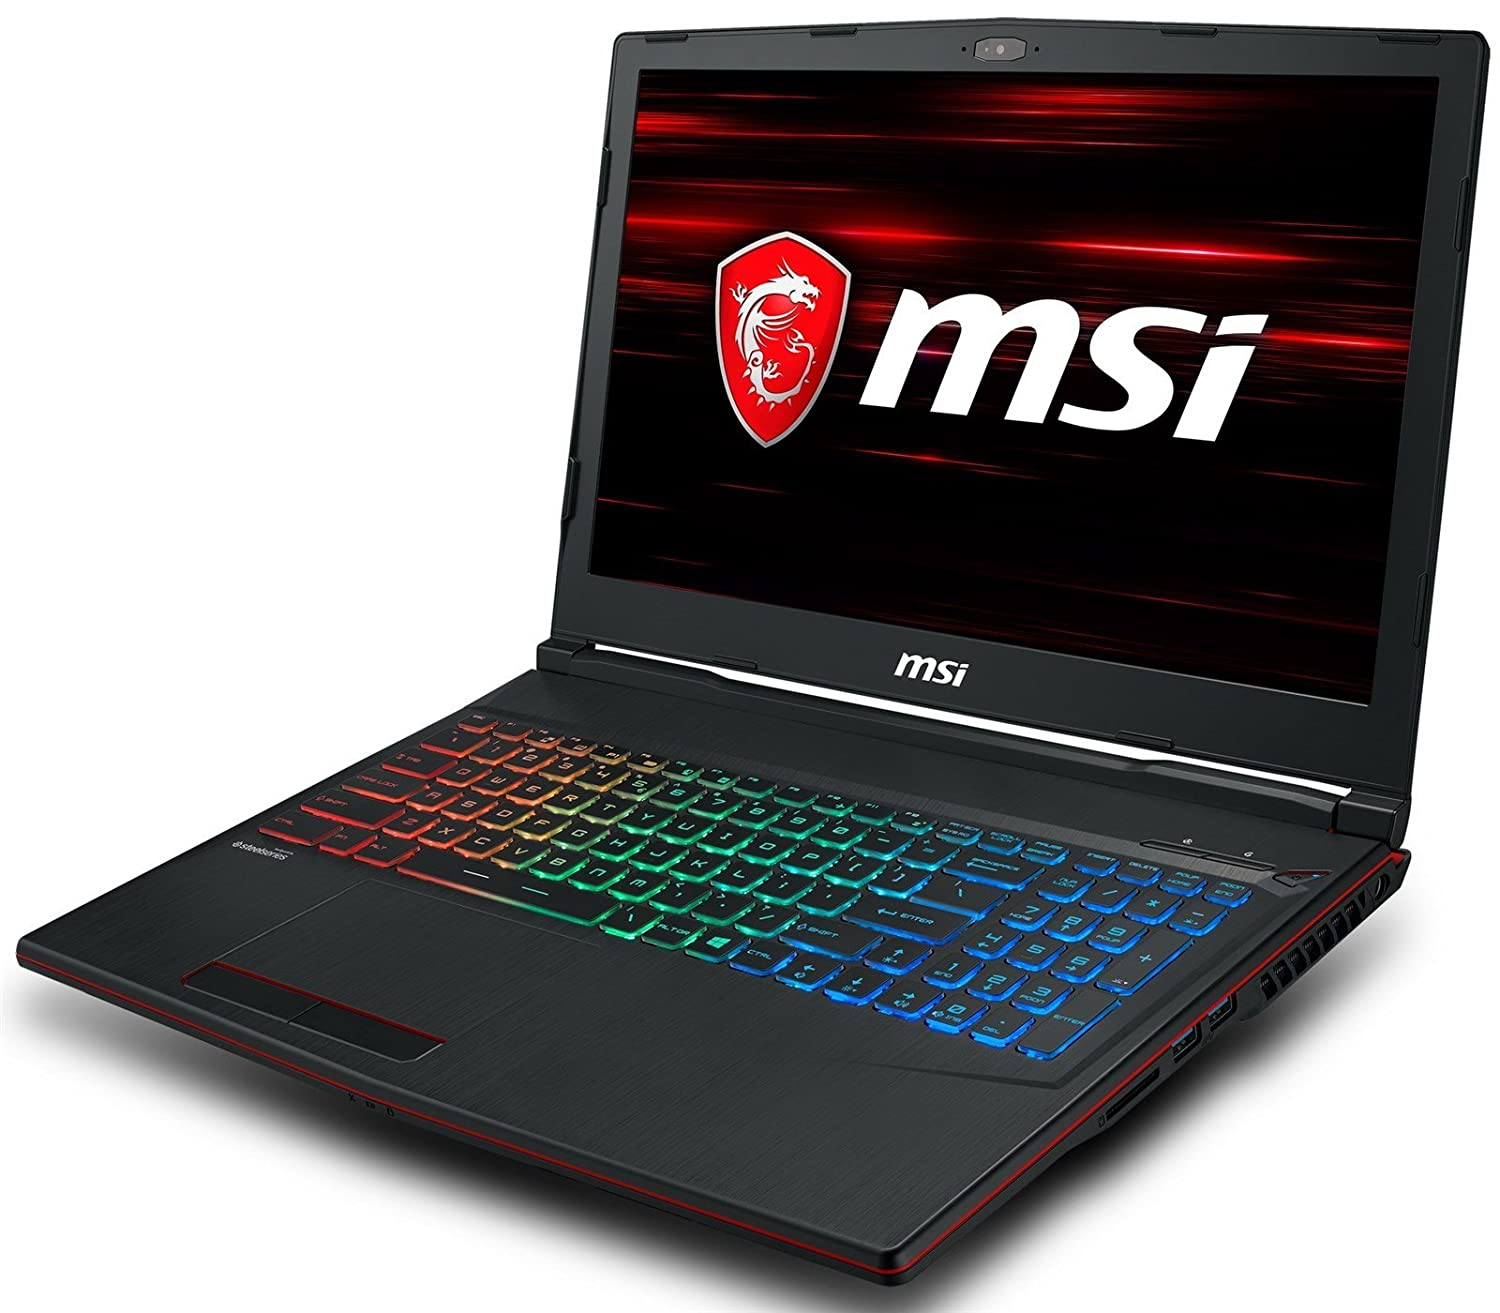 Amazon.com: MSI GP63 Leopard-013 (i7-8750H, 16GB RAM, 256GB SATA SSD + 1TB HDD, NVIDIA GTX 1060 6GB, 15.6